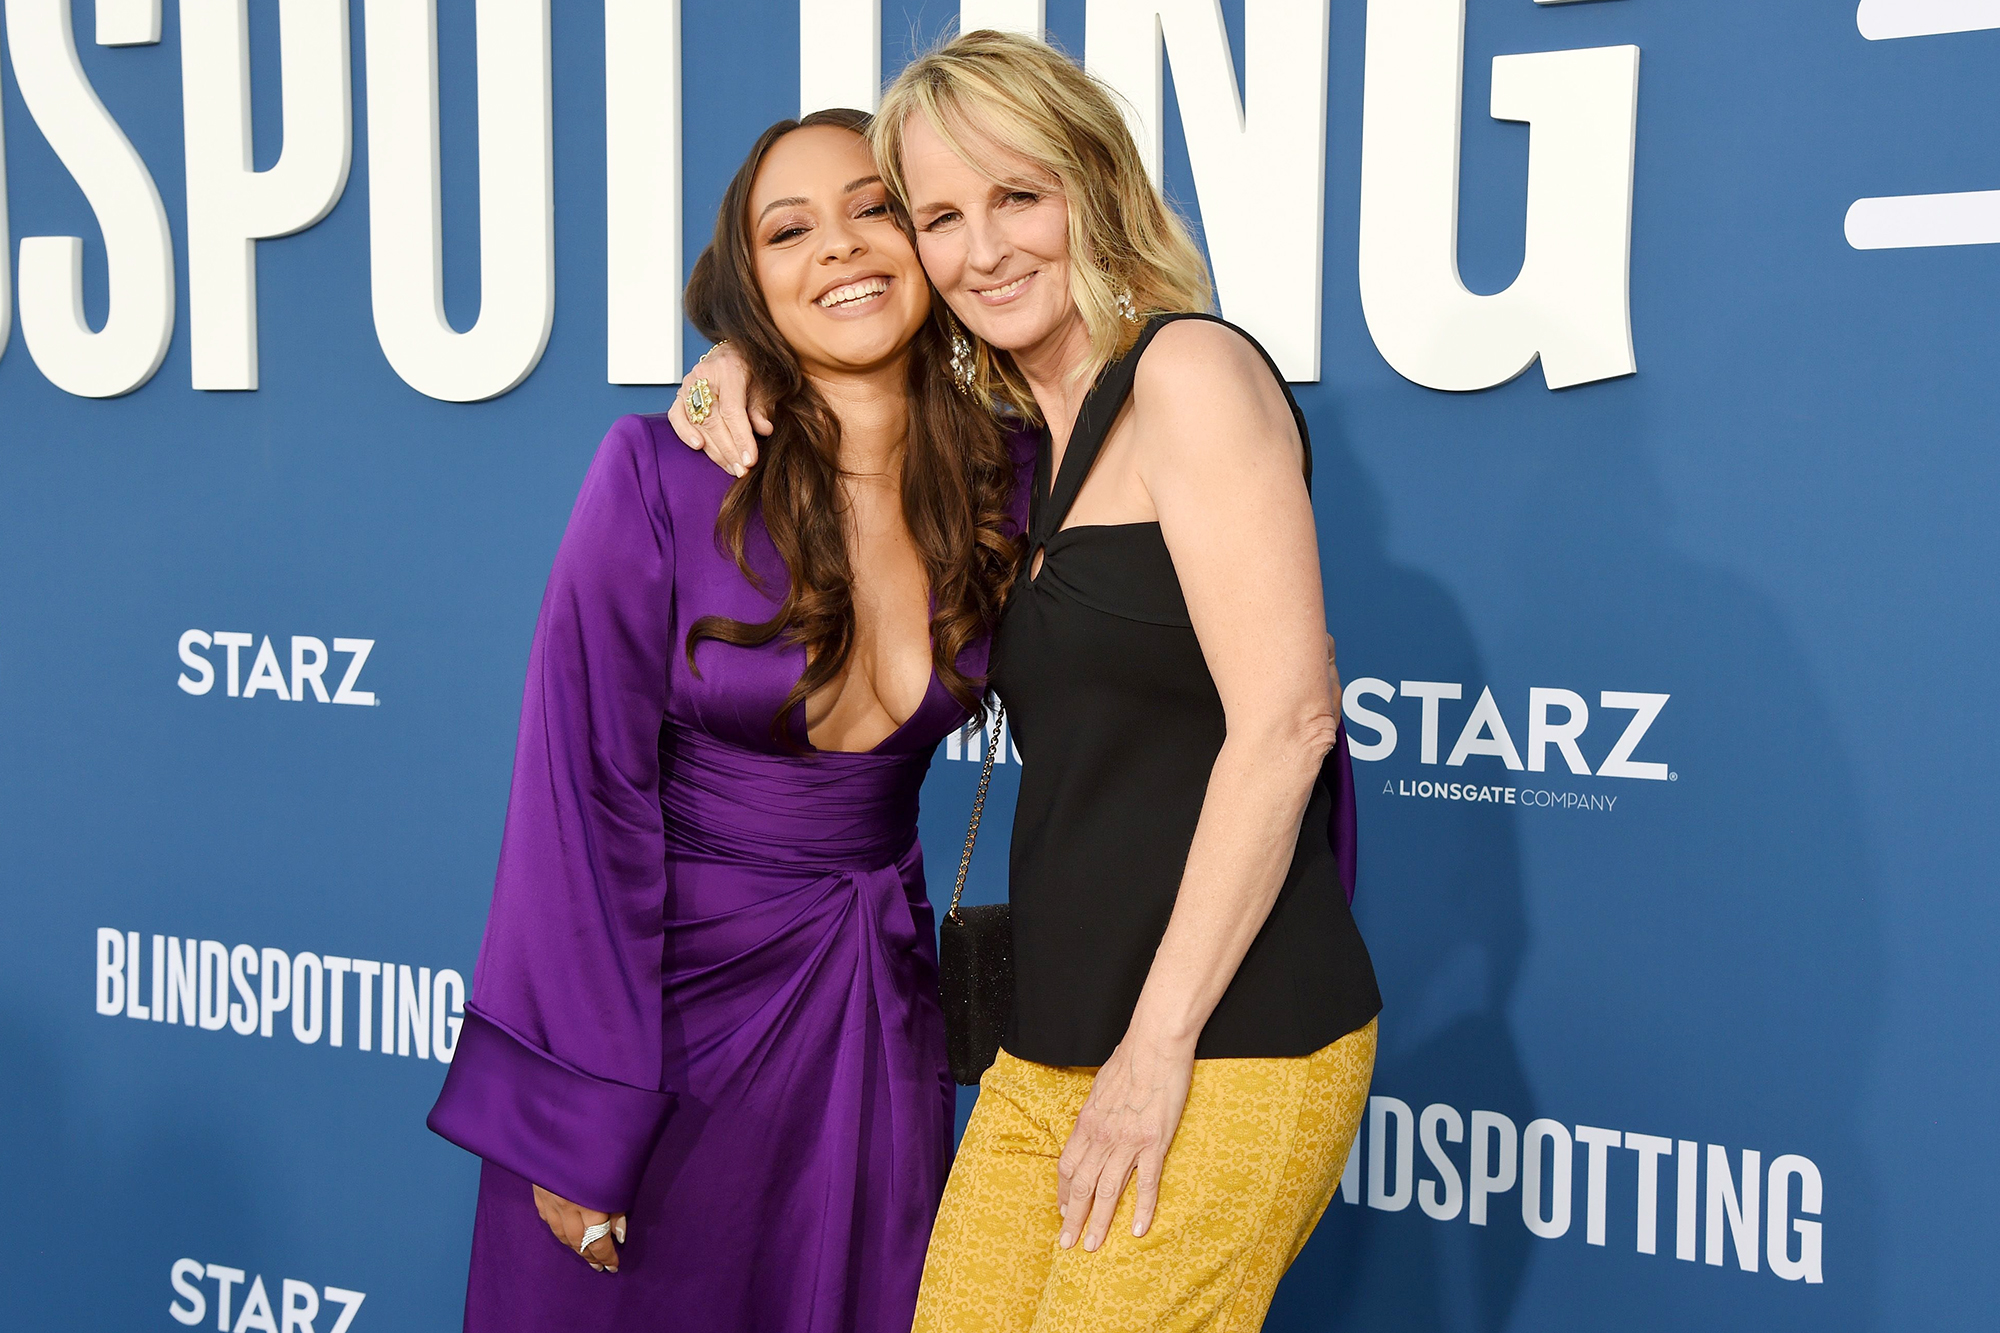 Jasmine Cephas Jones and Helen Hunt attend the Blindspotting Los Angeles Premiere at Hollywood Forever on June 13, 2021 in Hollywood